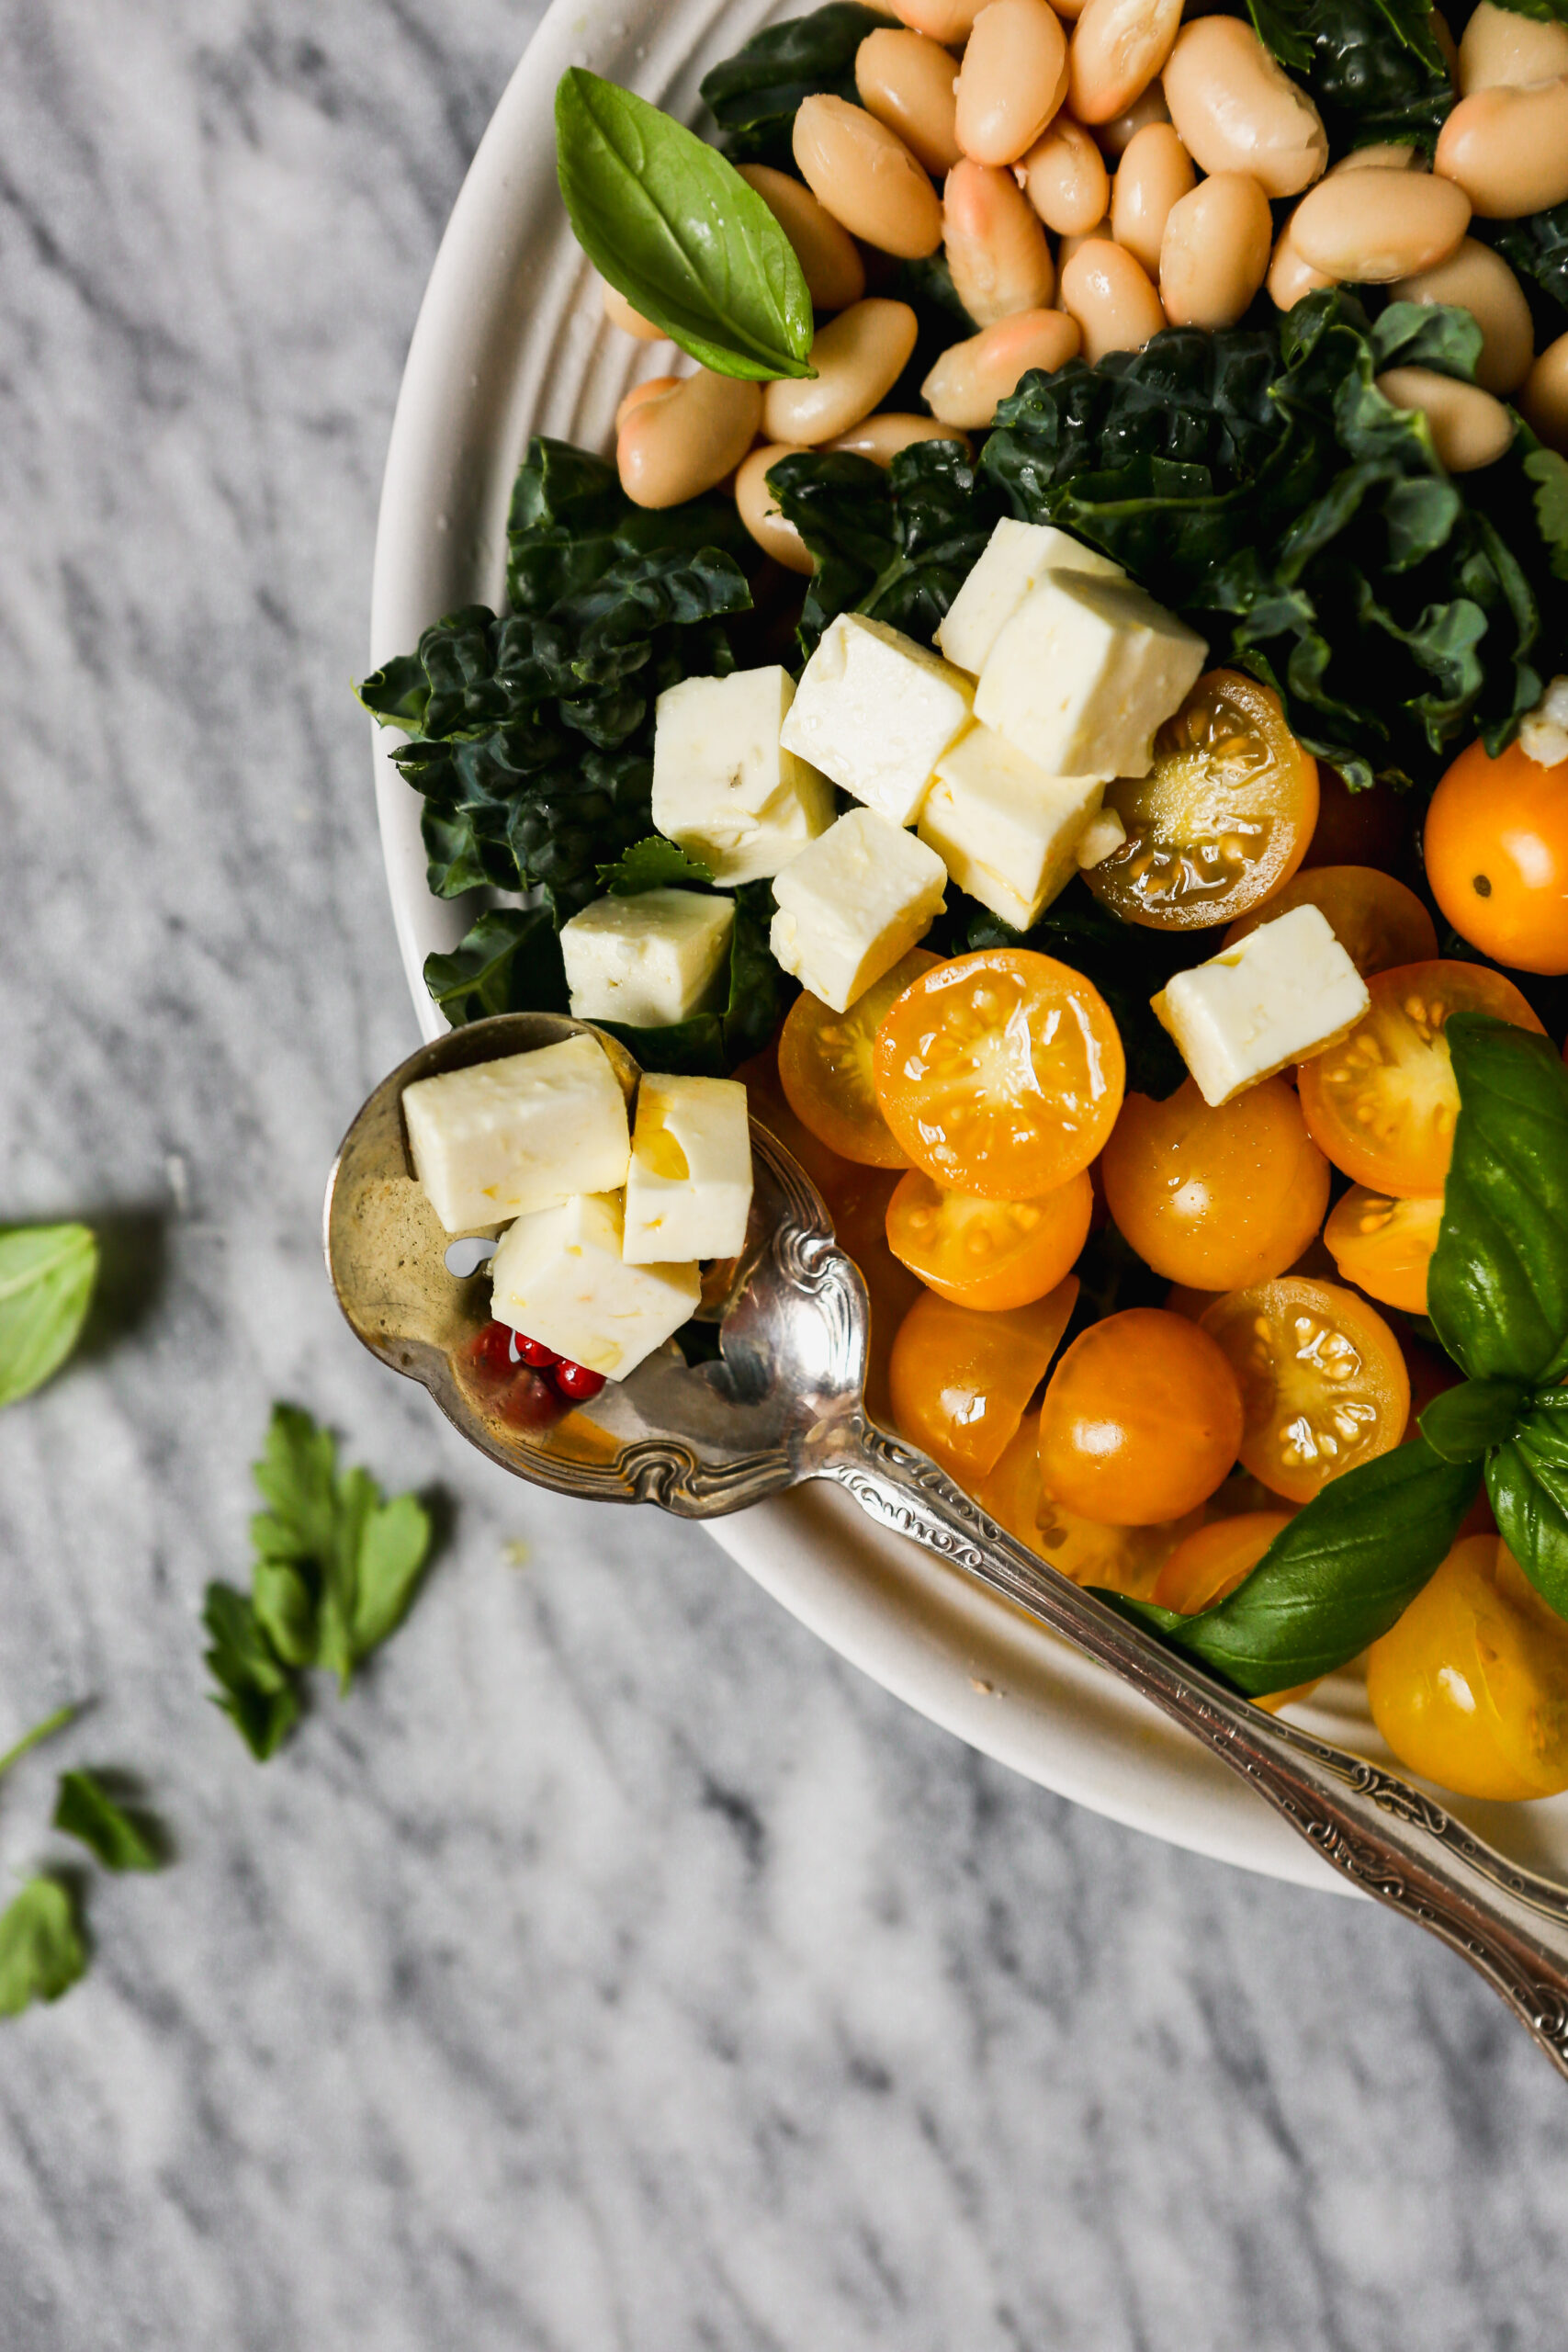 Kale and Sorghum Salad with yellow tomatoes, basil, cucumbers, white beans, and feta in a white bowl on a marble surface.